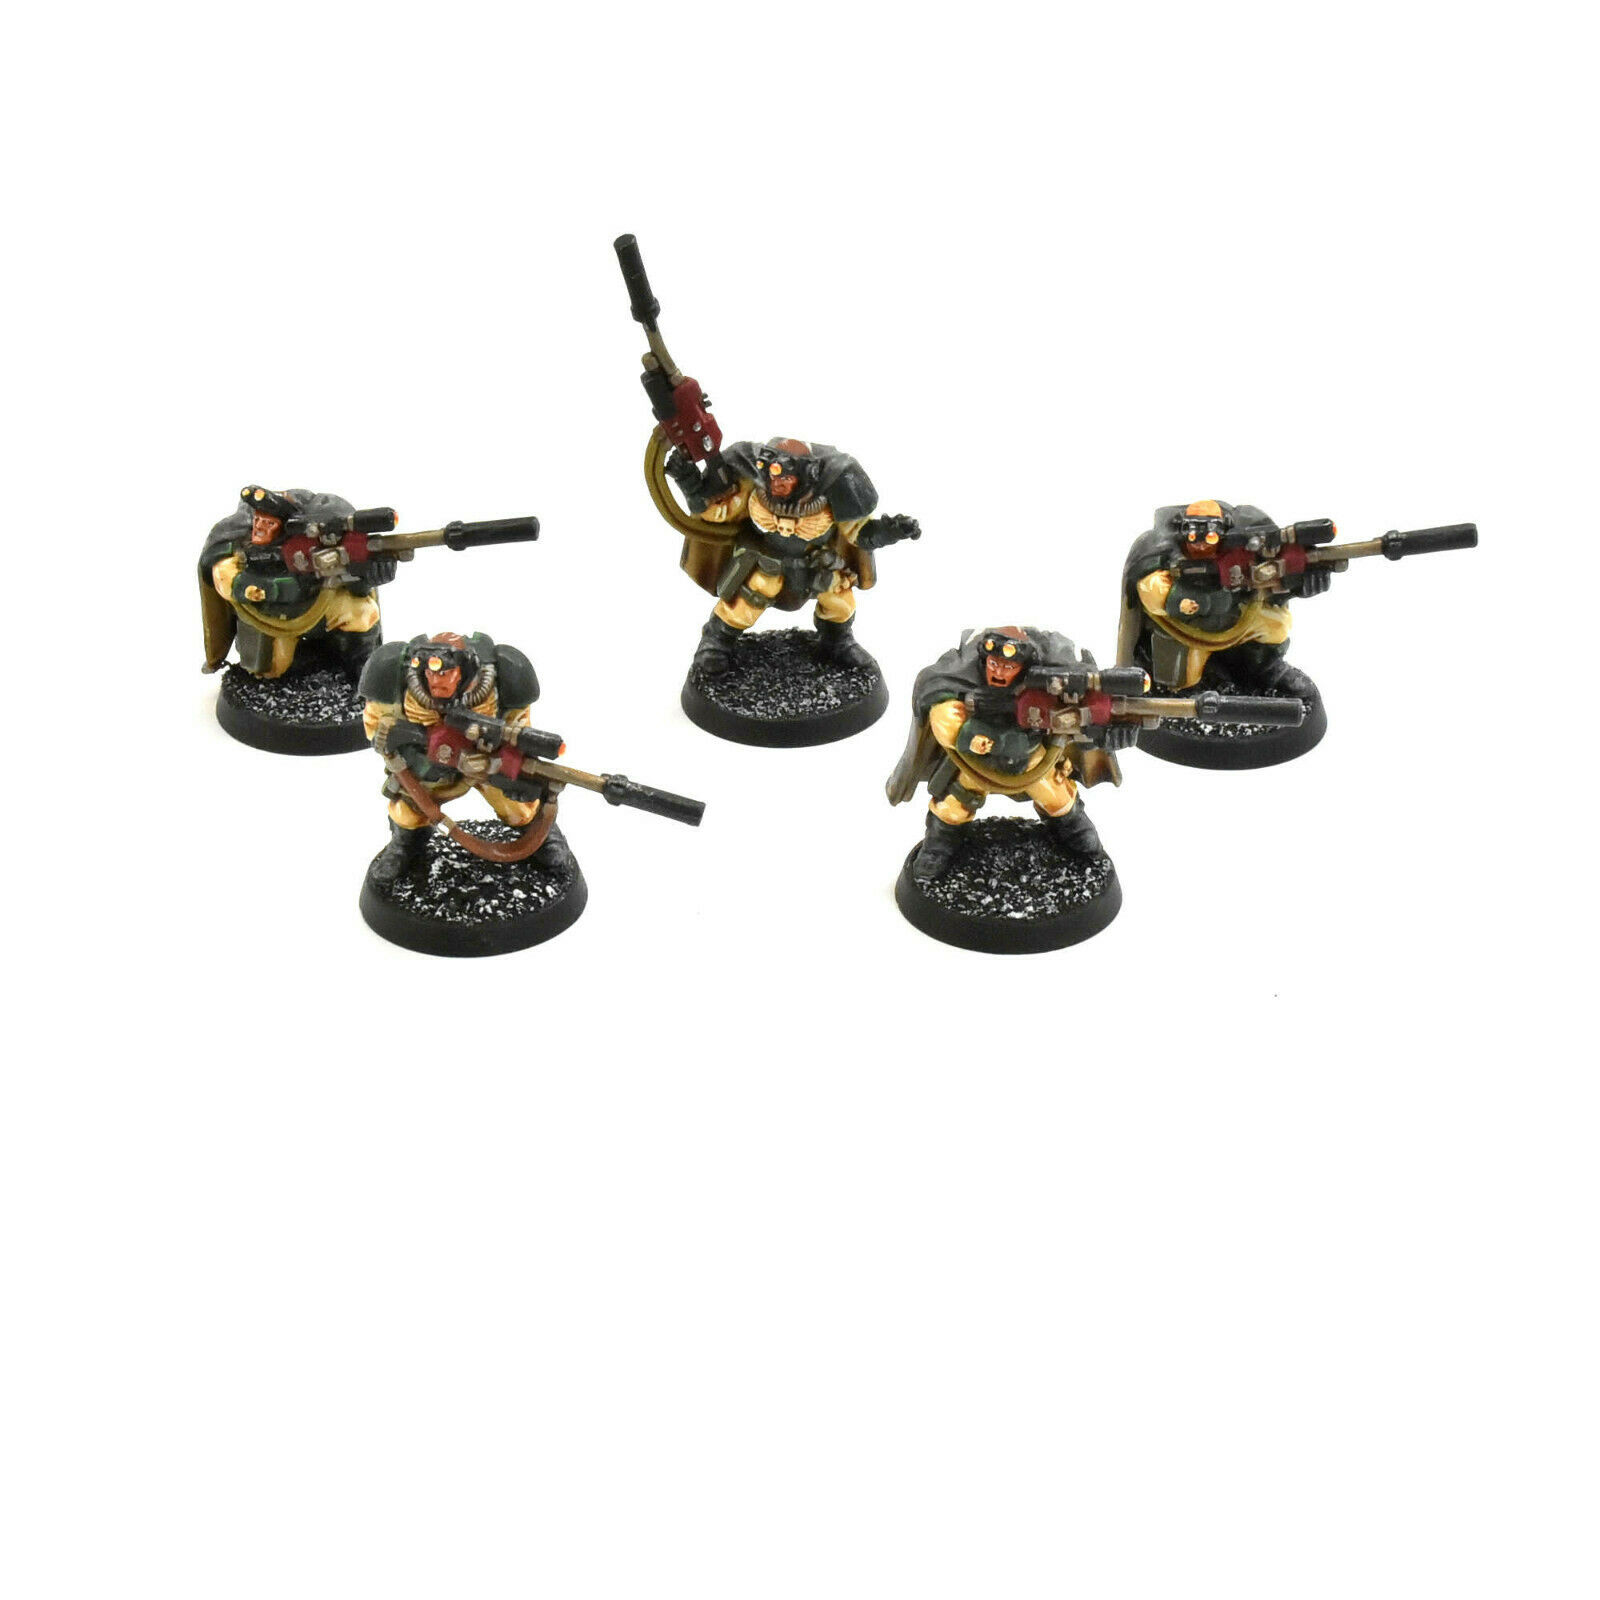 DARK ANGELS 5 scouts with sniper rifles  1 WELL PAINTED Warhammer 40K